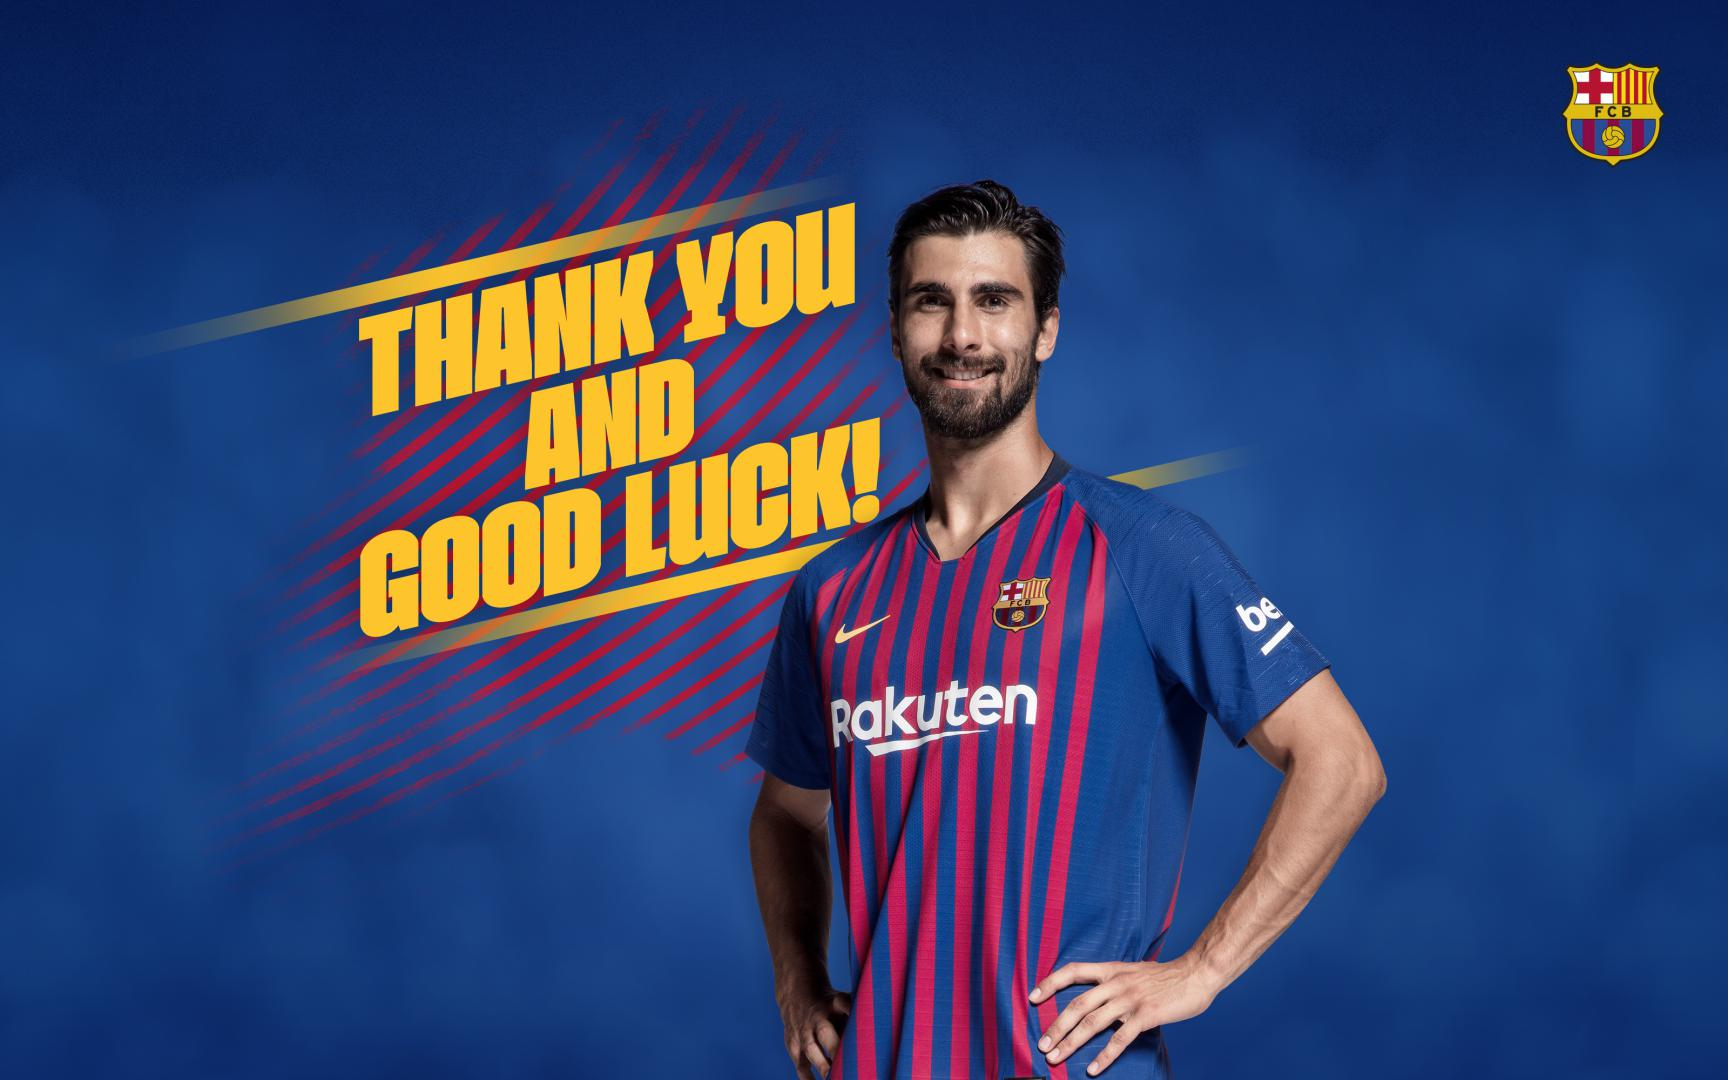 Agreement with Everton for transfer of André Gomes